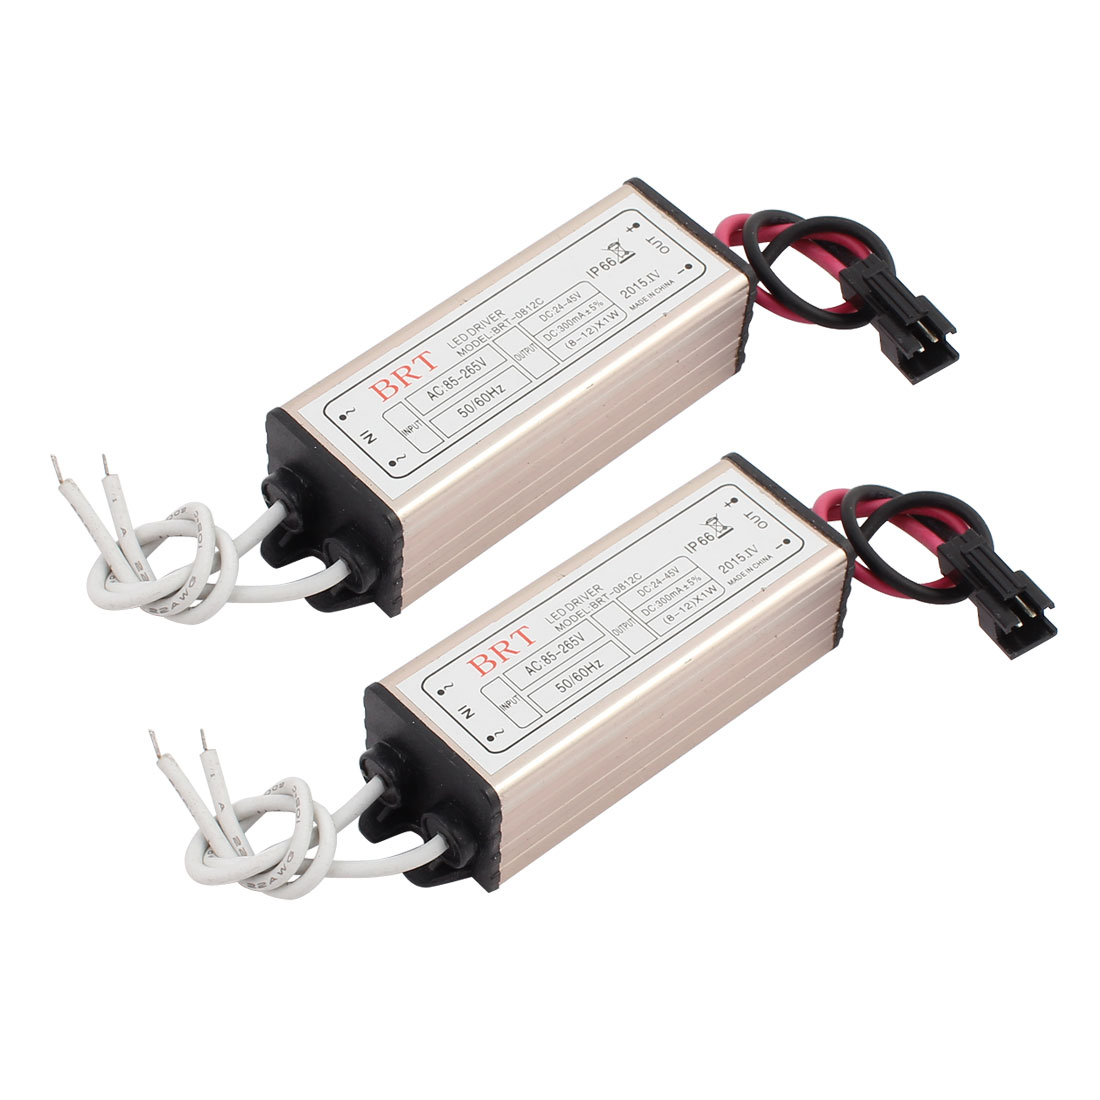 2Pcs AC85-265V to DC24-45V 300mA Transformer IP66 Waterproof LED Driver Power Supply